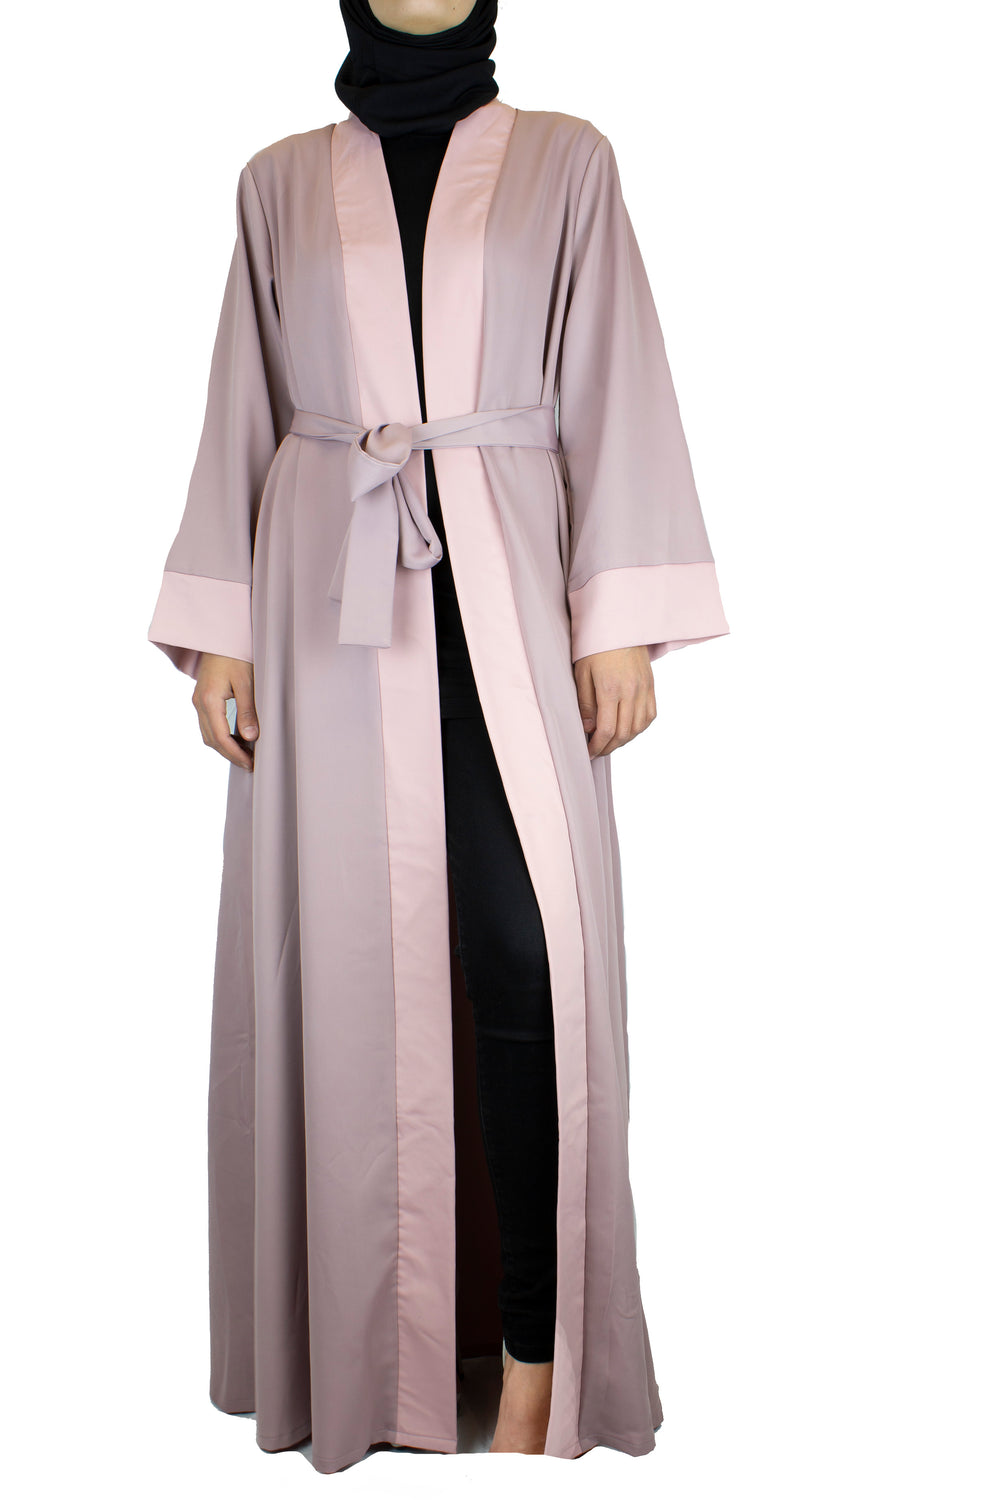 open front abaya in mauve and light pink with a waist tie